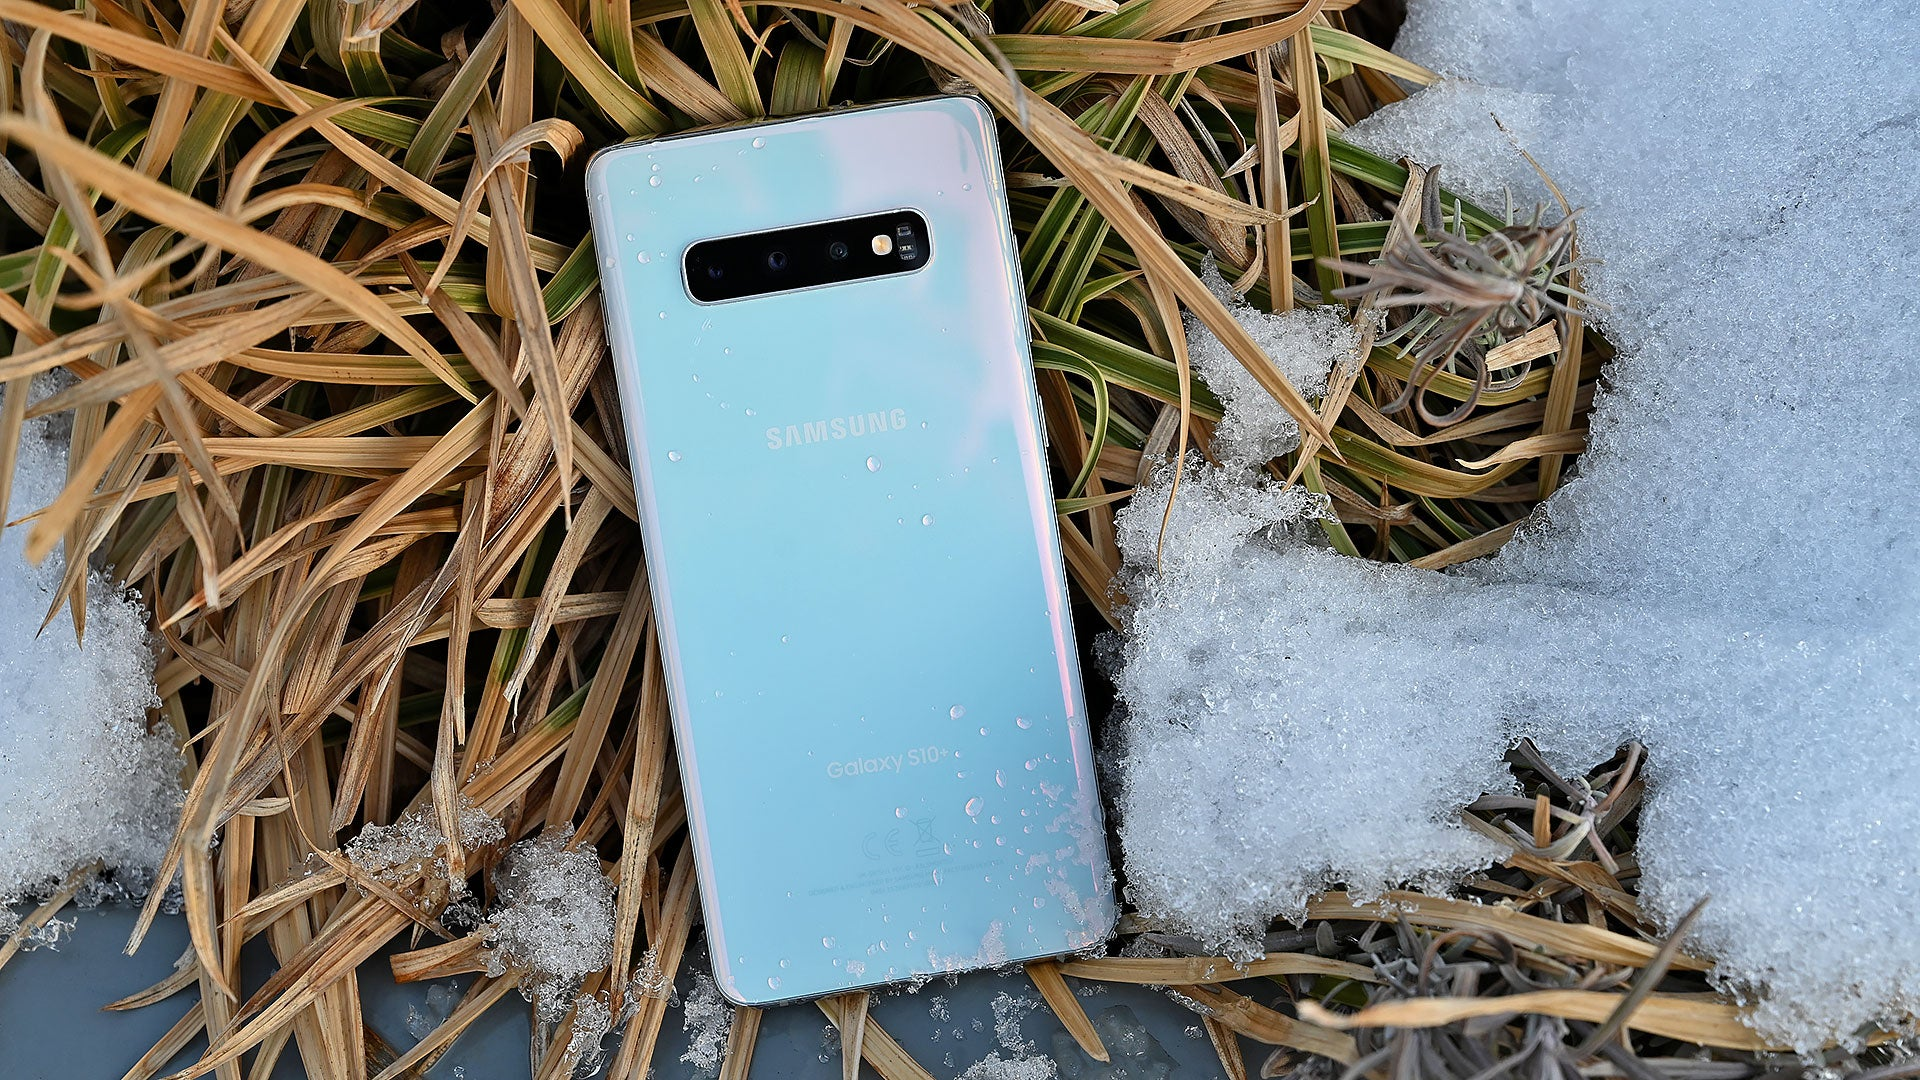 Alert, The Samsung Galaxy S10 Is Now For Sale In Australia